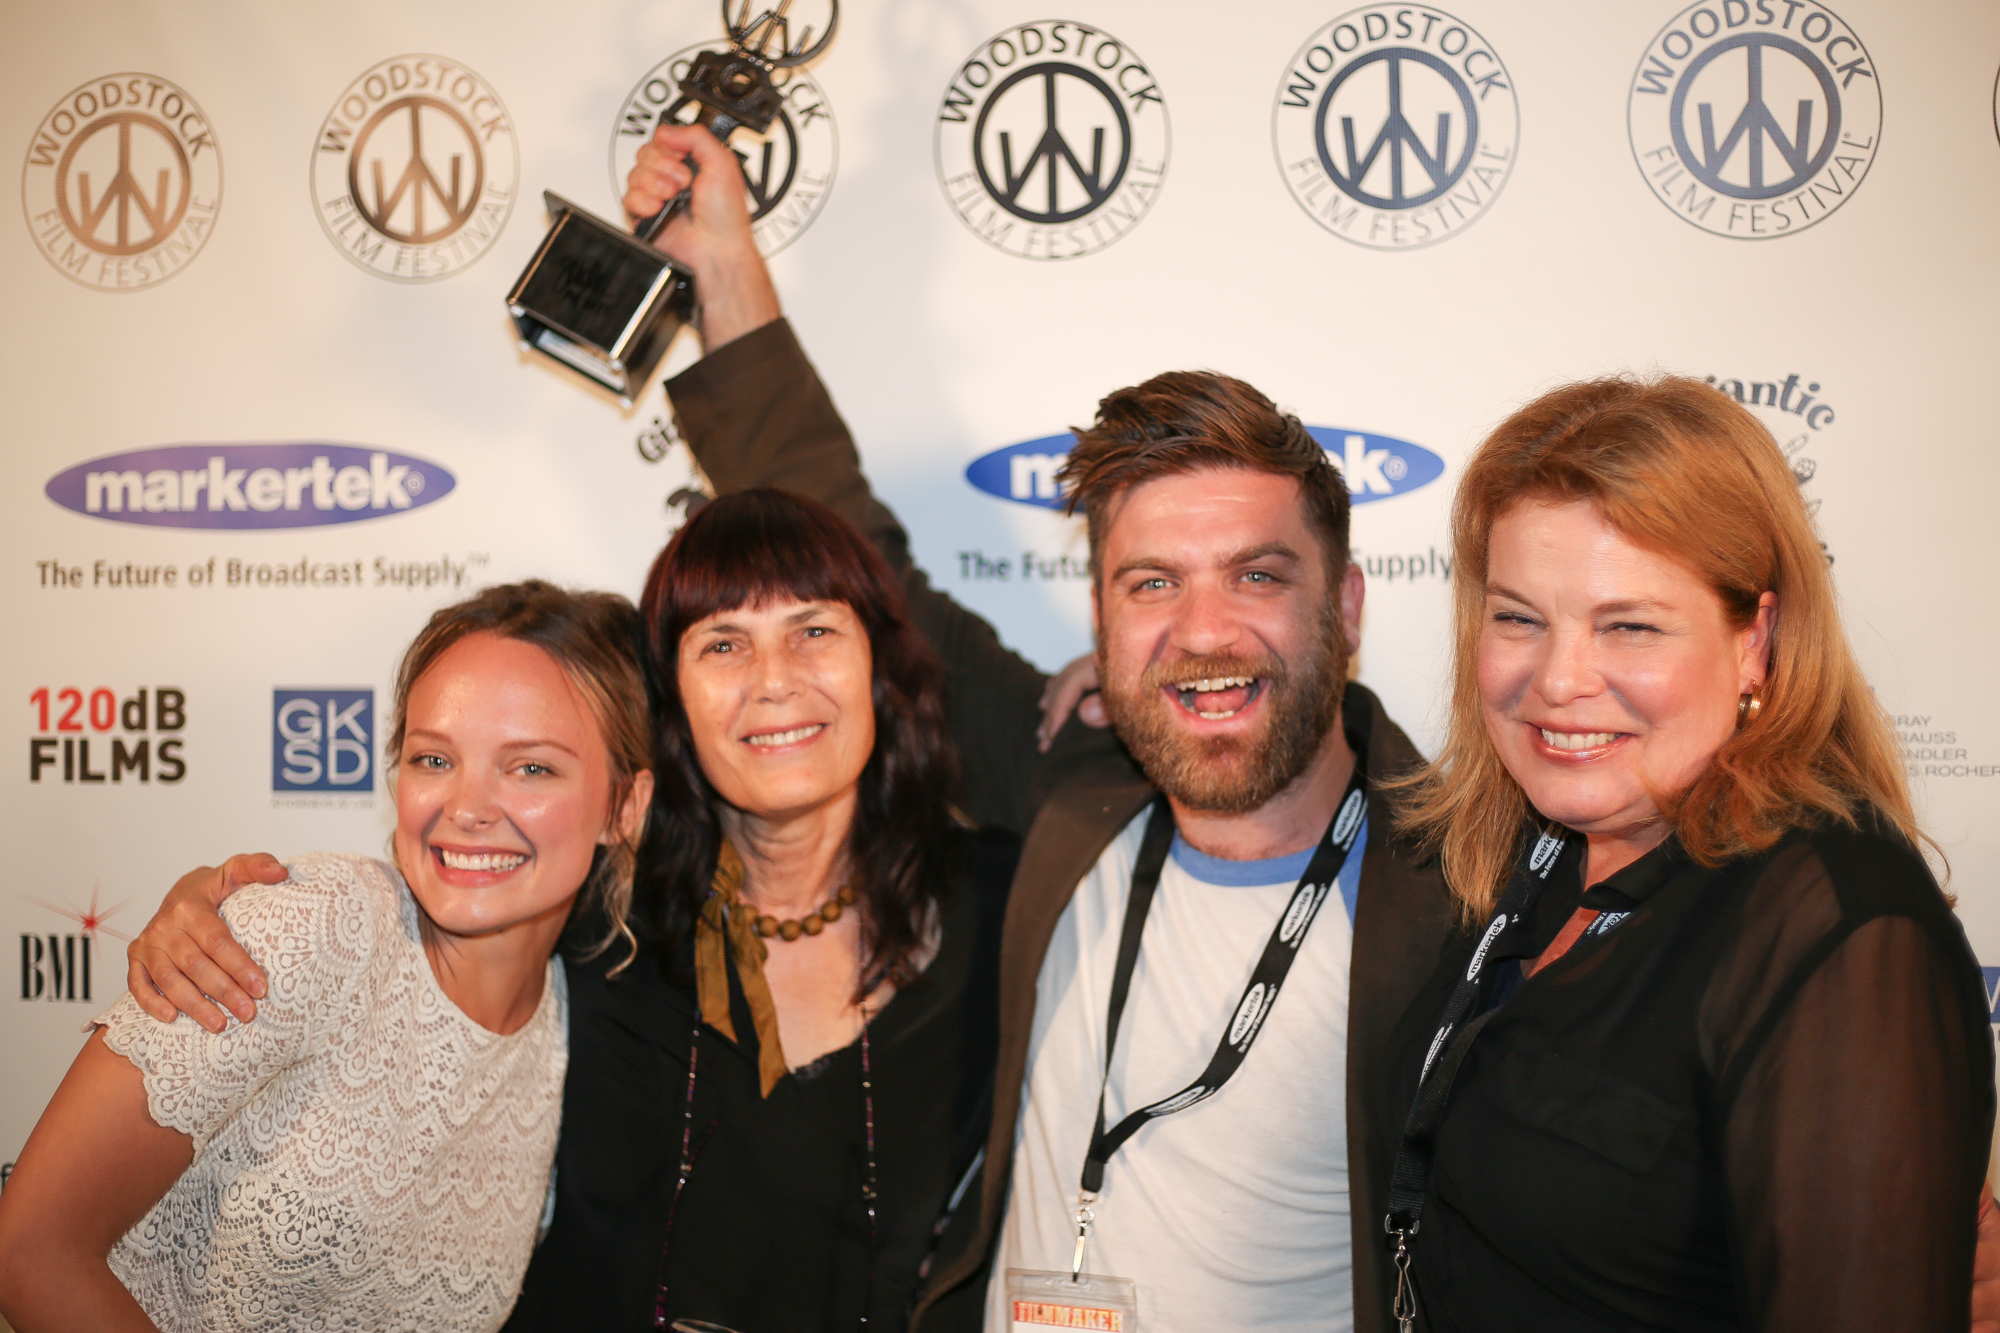 Auden Thornton, Meira Blaustein, Harris Doran, and Catherin Curtin, BEAUTY MARK won the Ultra Indie Award